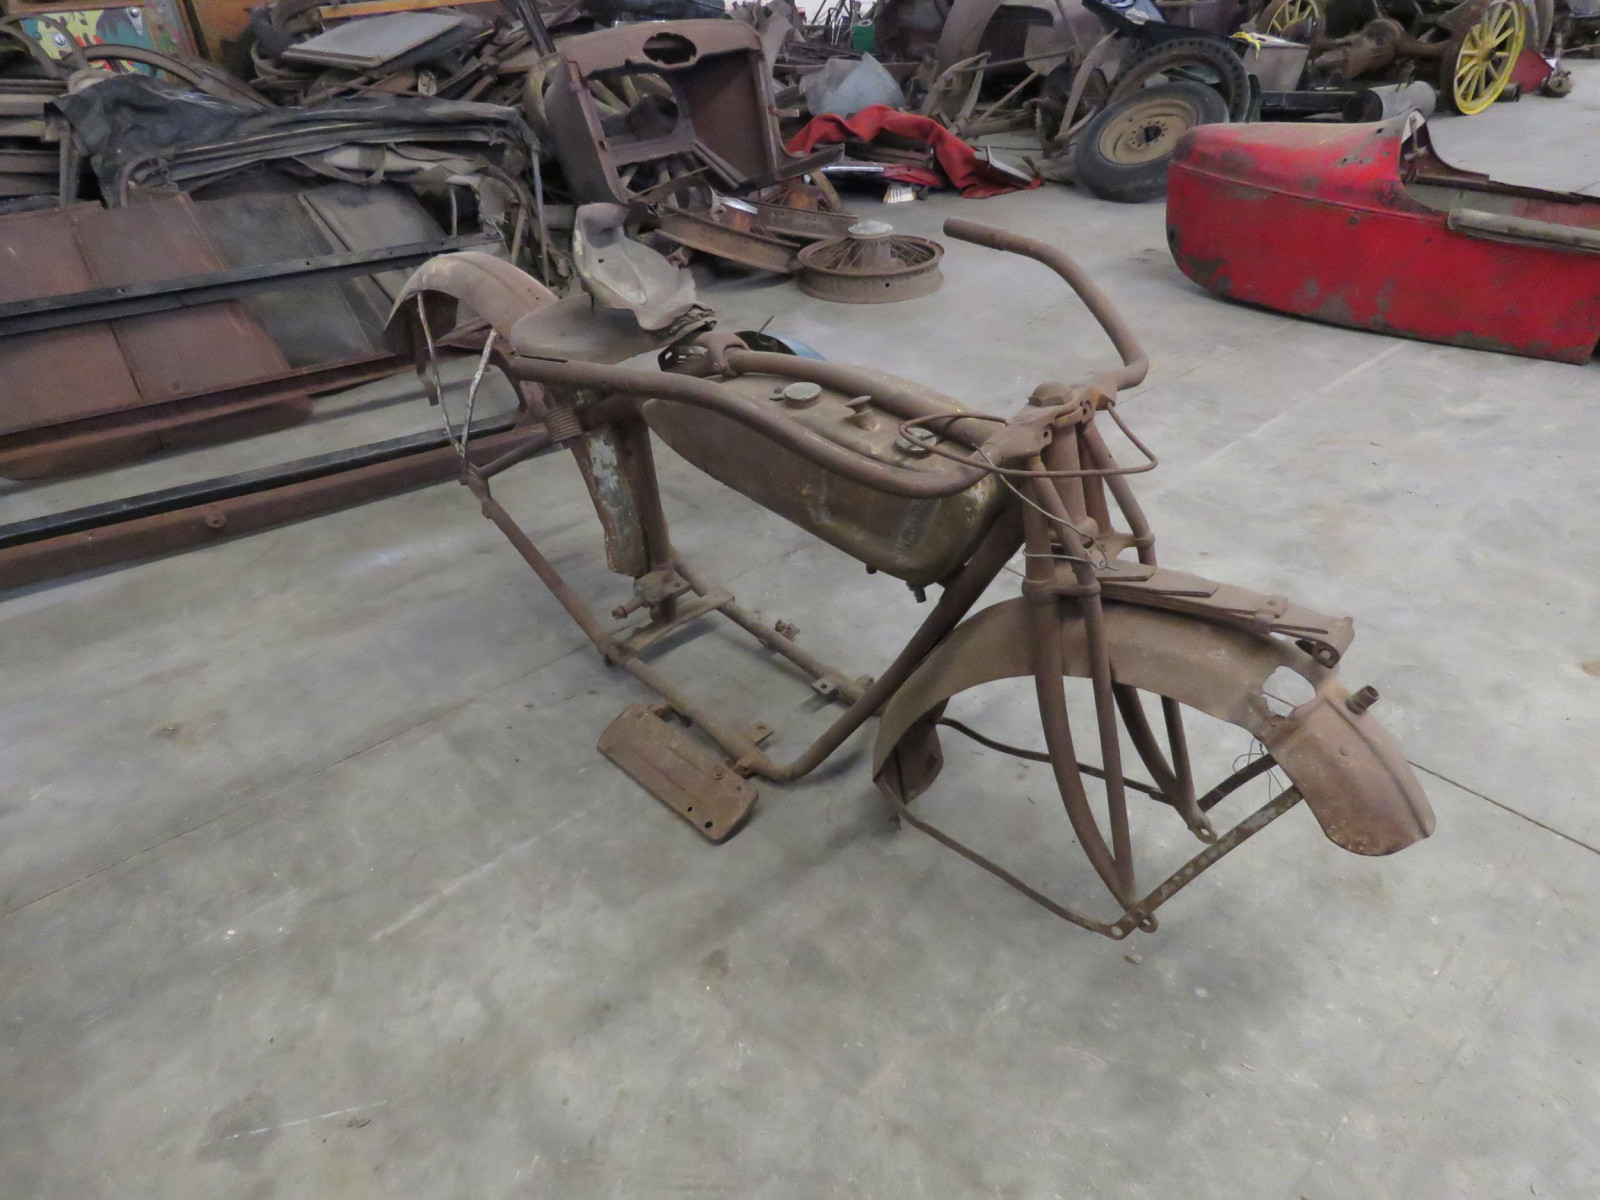 RARE 1920's Indian Motorcycle Project - Image 3